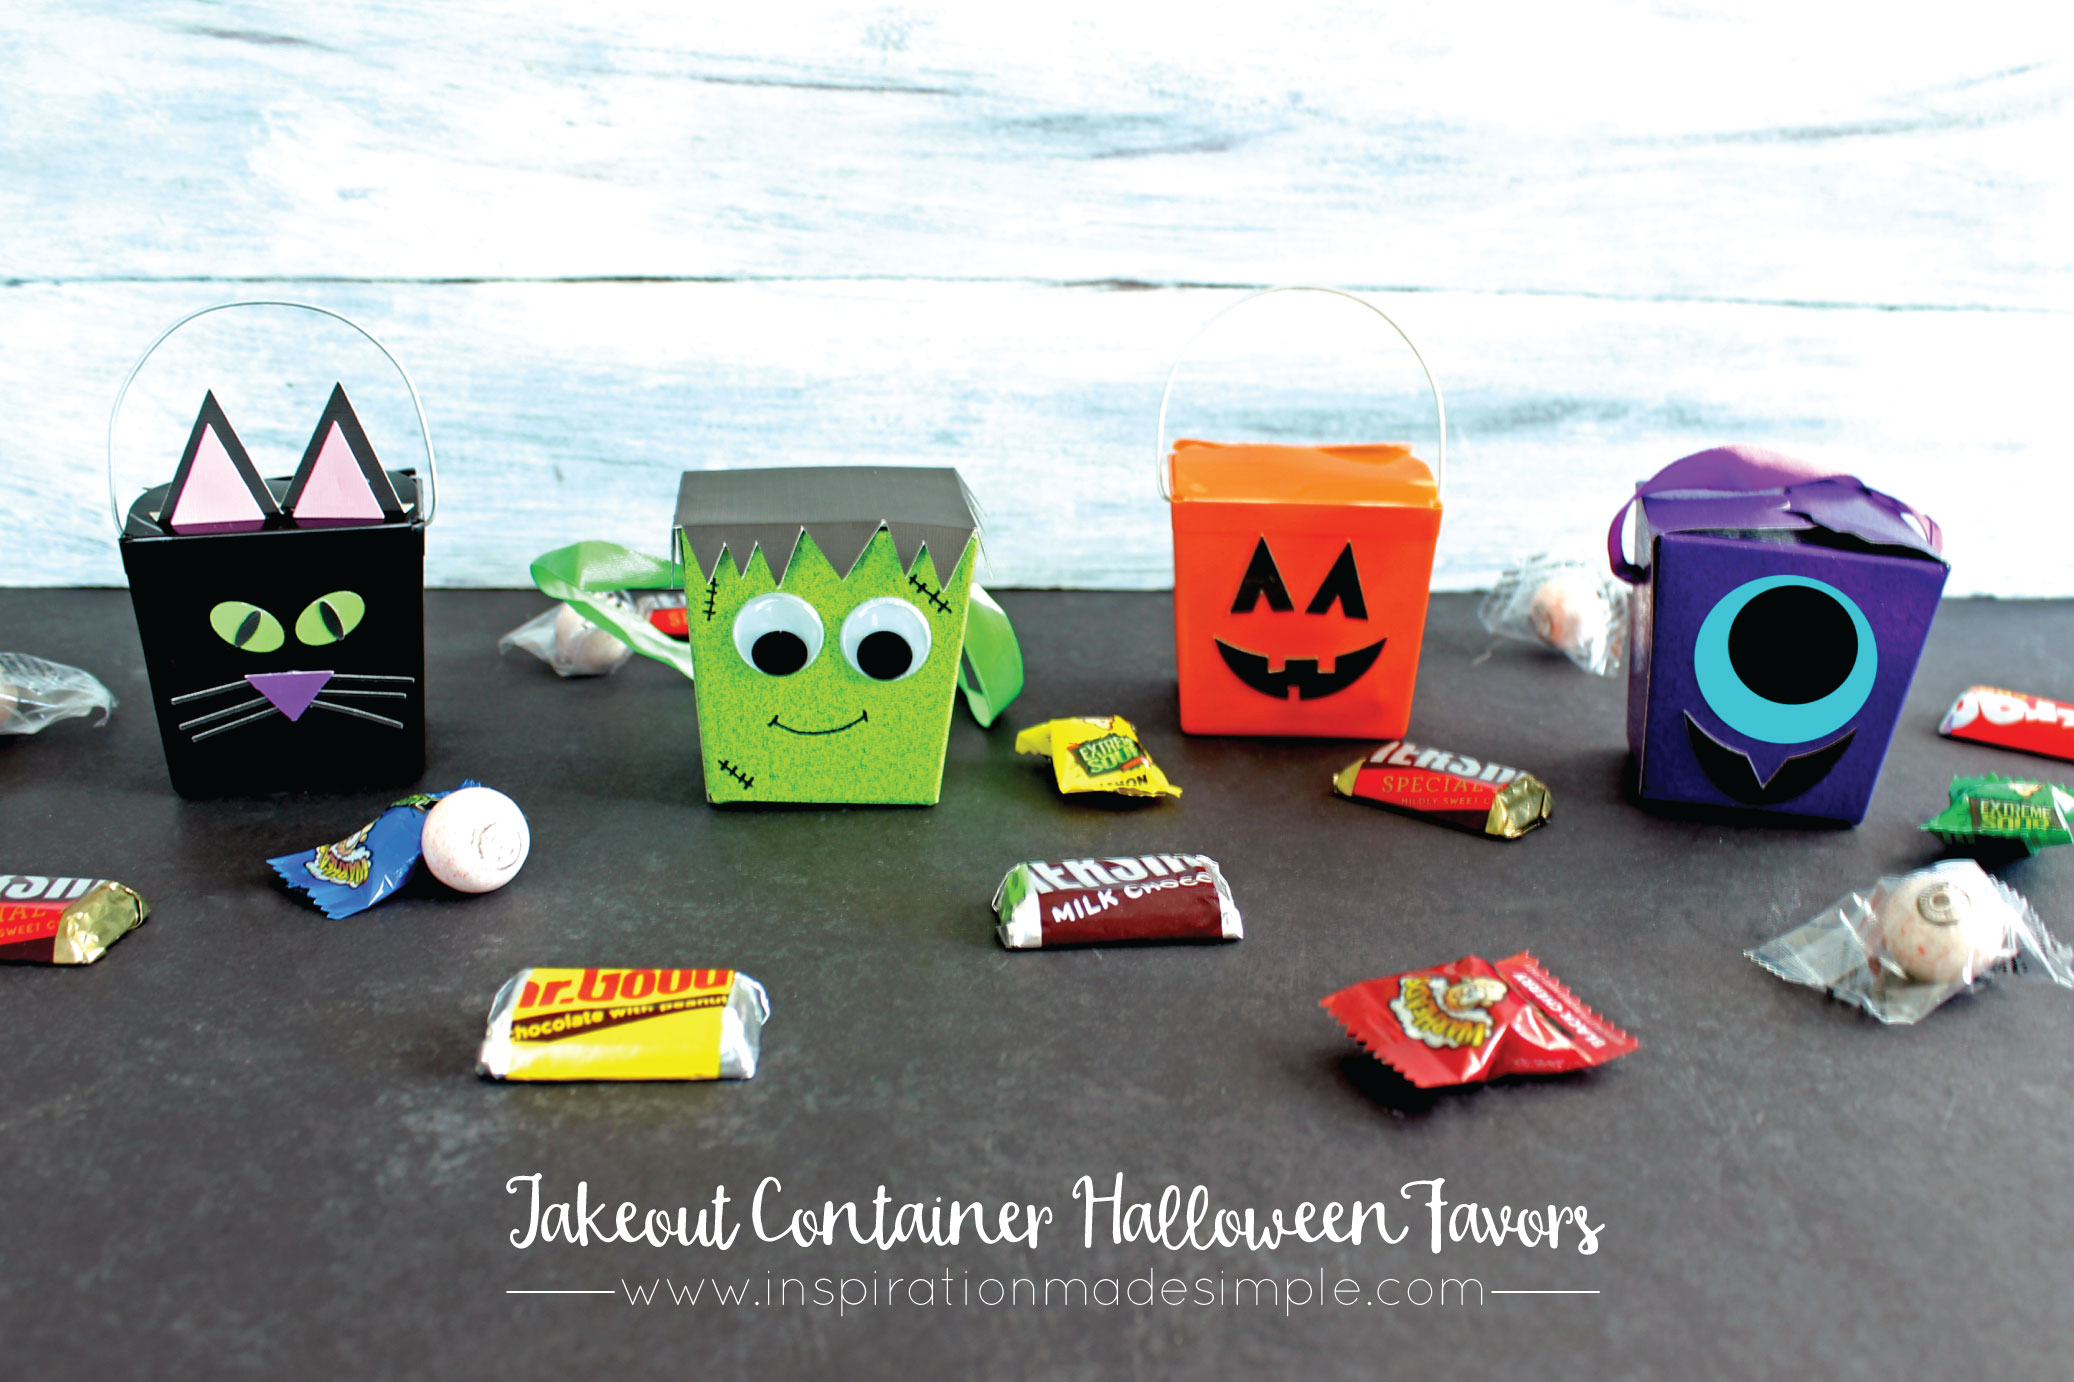 DIY Takeout Container Halloween Favors